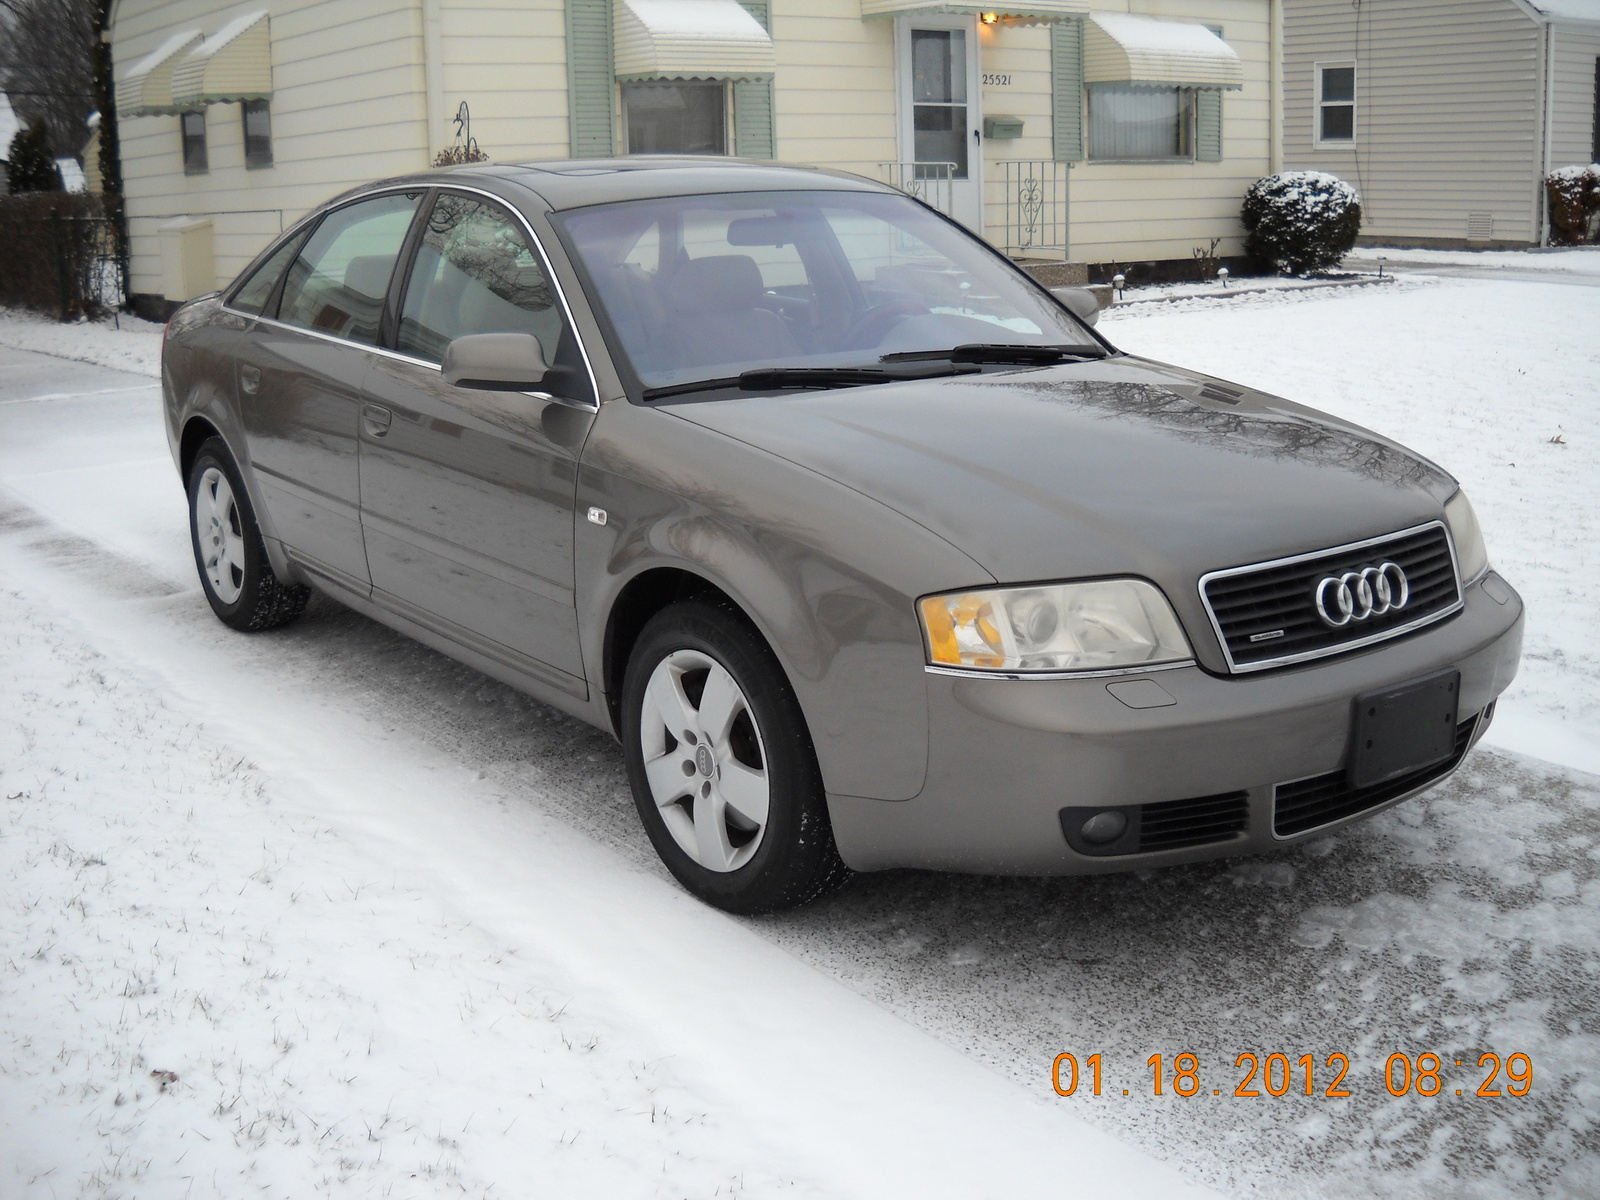 28 2002 audi a6 quattro owners manual 29998 owners